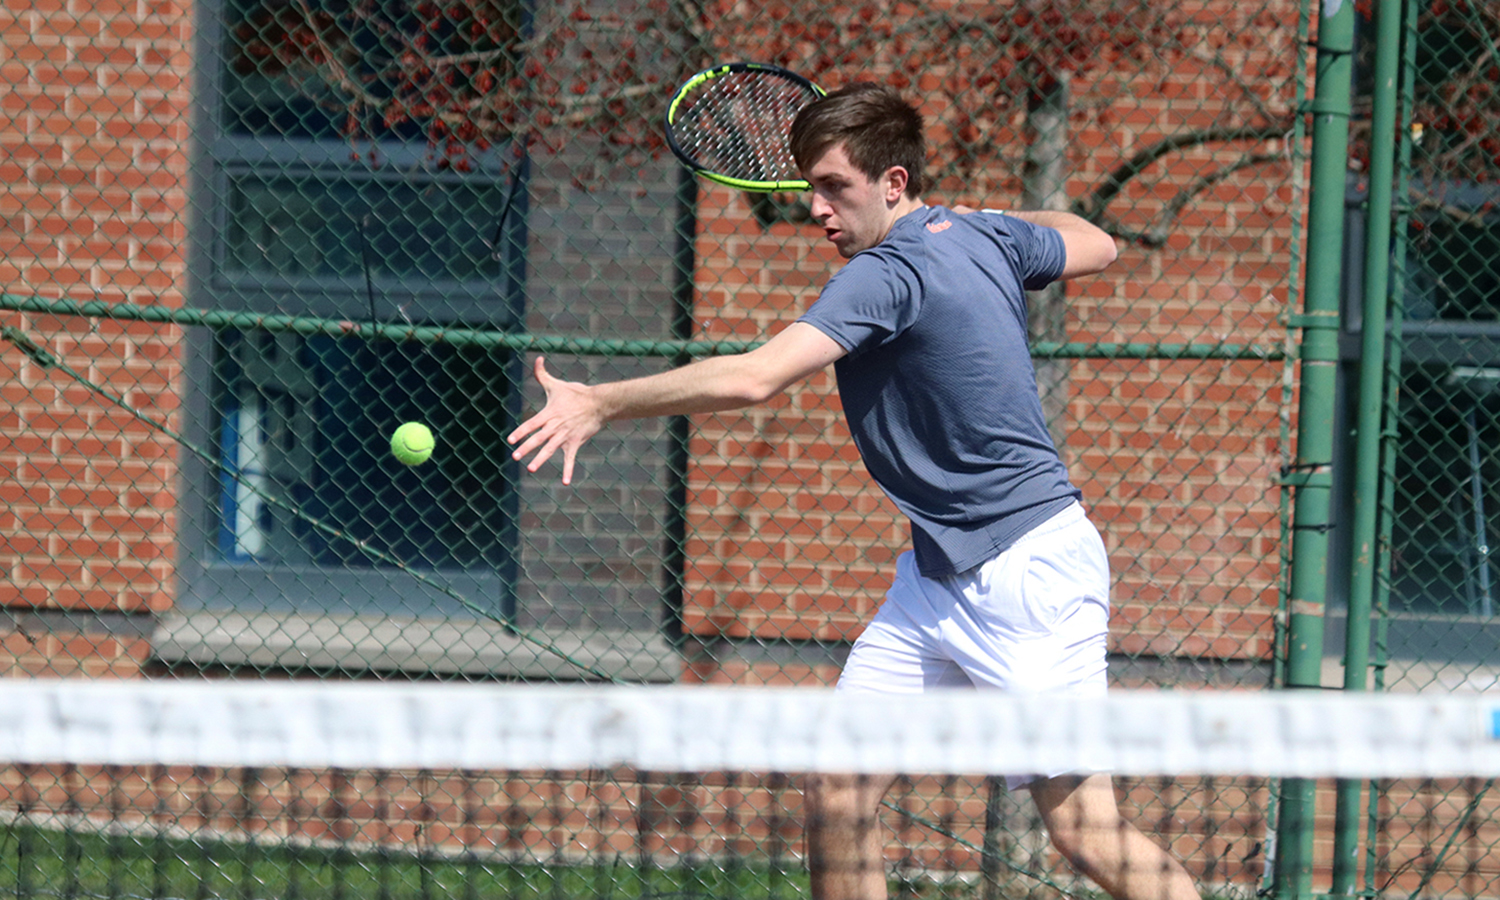 Alan Dubrovsky '20 lines up a forehand during Hobart's match against St. Lawrence University. Dubrovsky was voted the Liberty League Men's Tennis Rookie of the Year by the conference's coaches